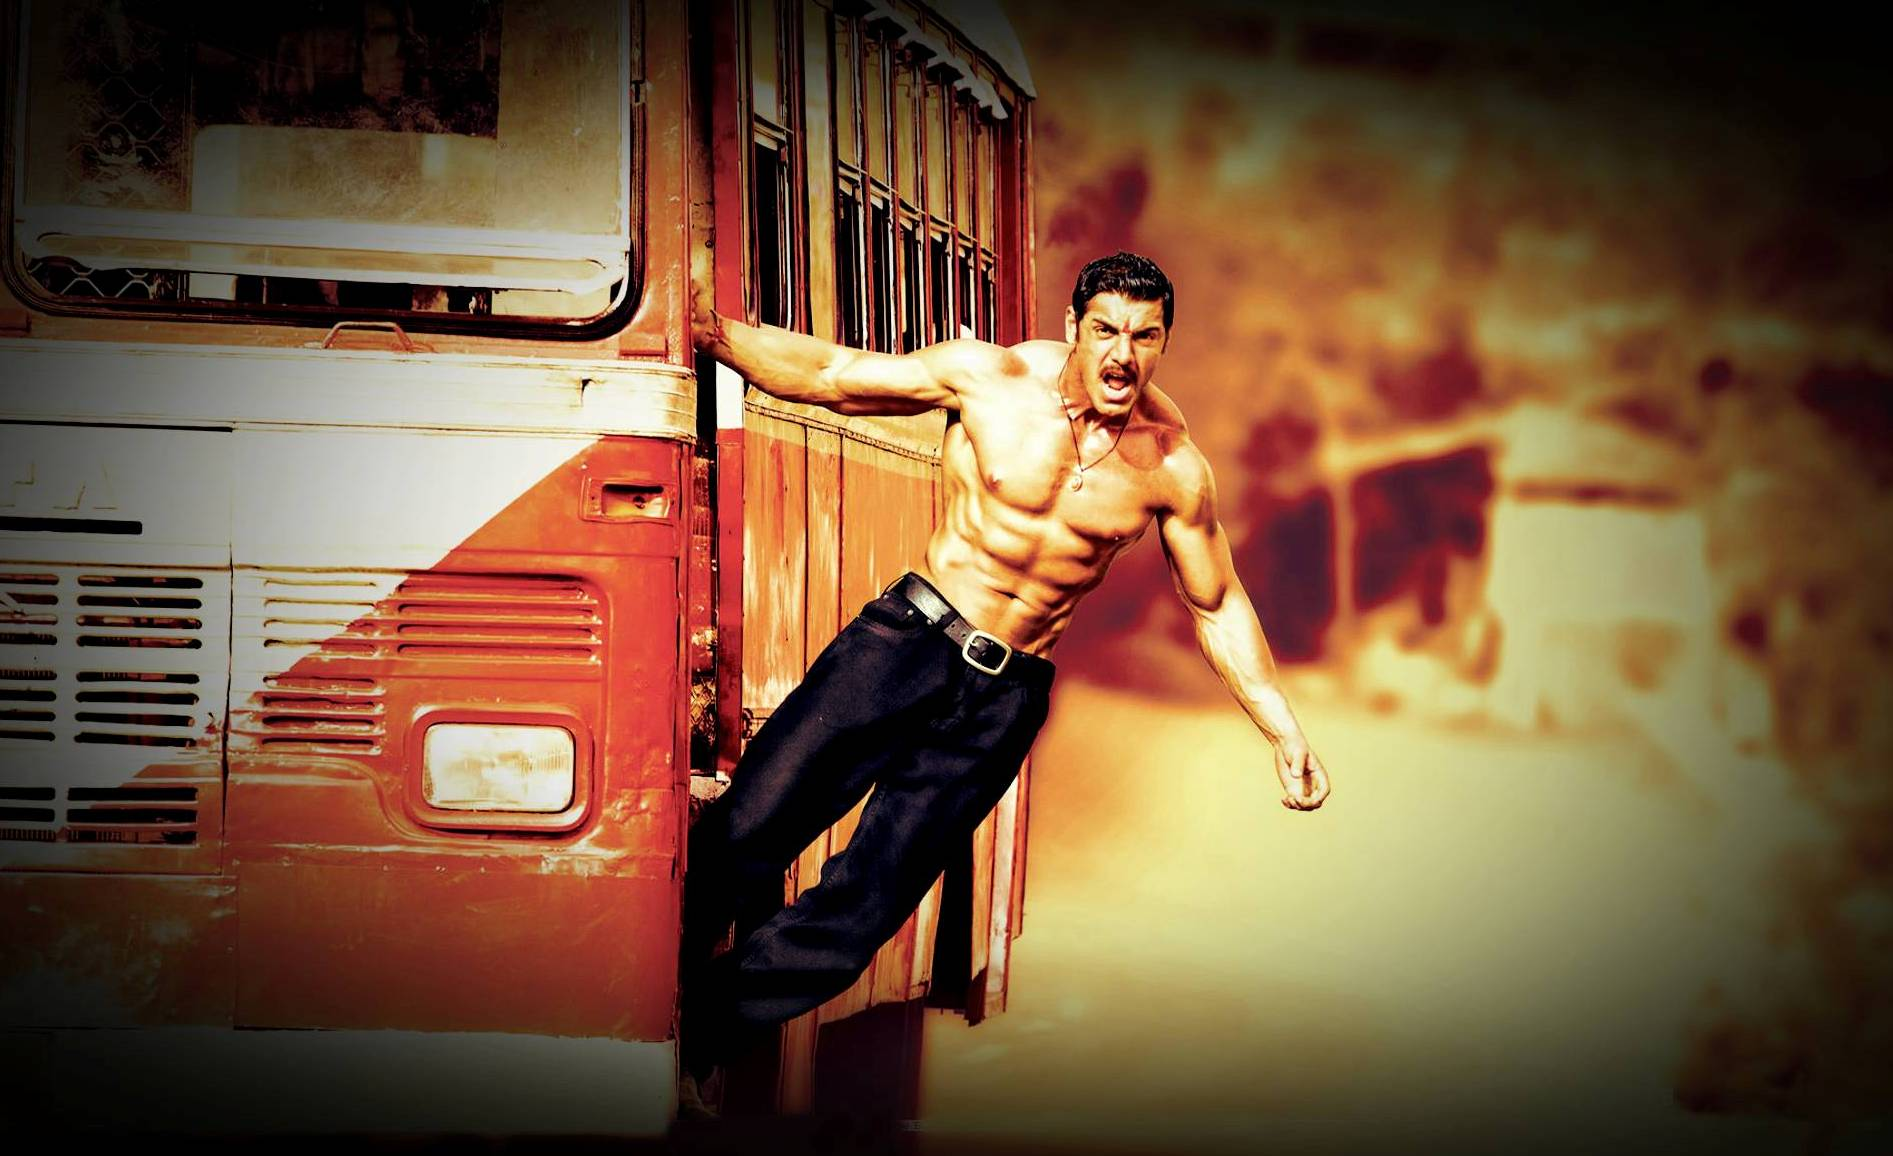 John Abraham in Shootout at WadalaJohn Abraham Body Building In Shootout At Wadala